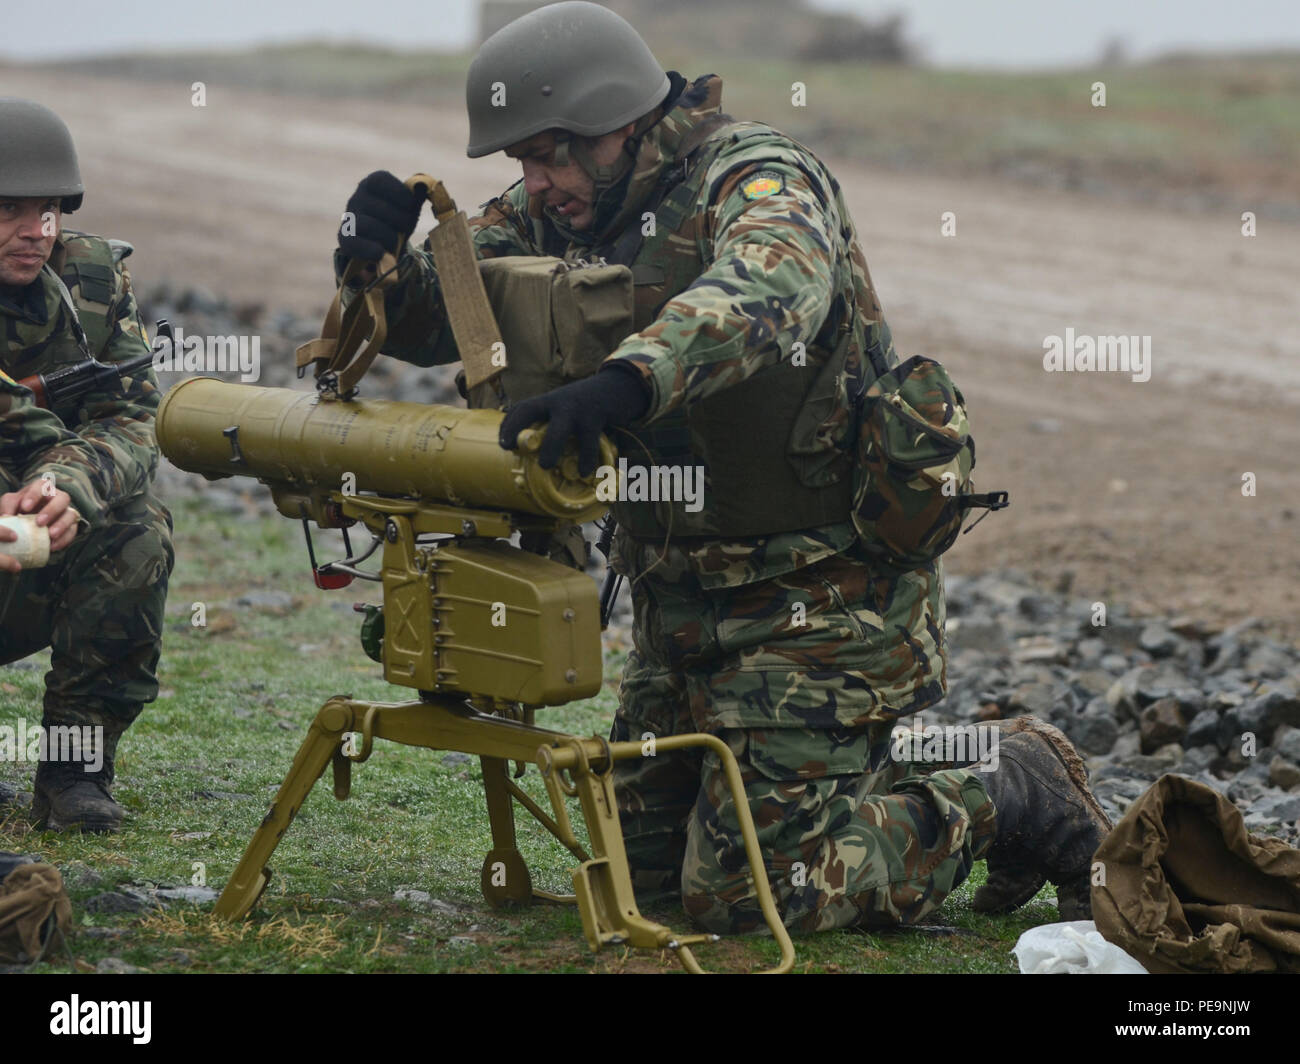 A Bulgarian soldier of 1-61st Mechanized Battalion sets up a 9M111M Faktoria anti-tank guided missile launcher during Exercise Peace Sentinel at Novo Selo Training Center, Bulgaria, Nov. 24, 2015. (U.S. Army photo by Staff Sgt. Steven M. Colvin/Released) - Stock Image